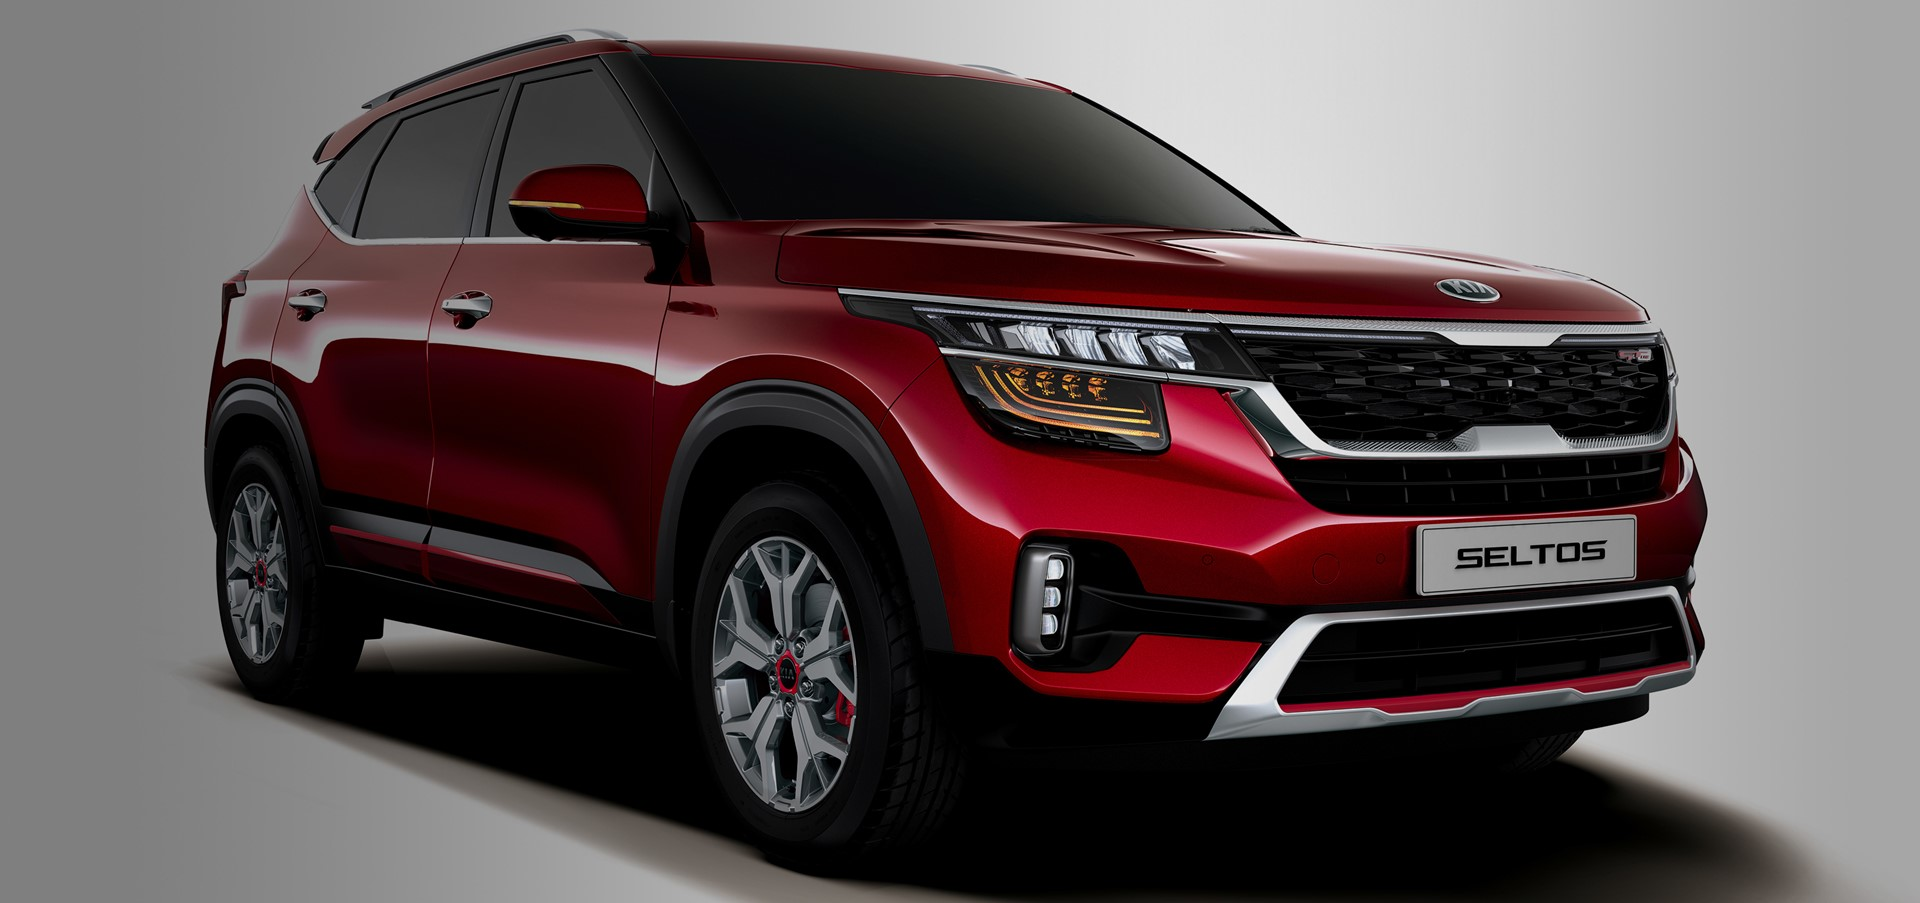 Sophisticated and Sporty: The All-New Kia Seltos